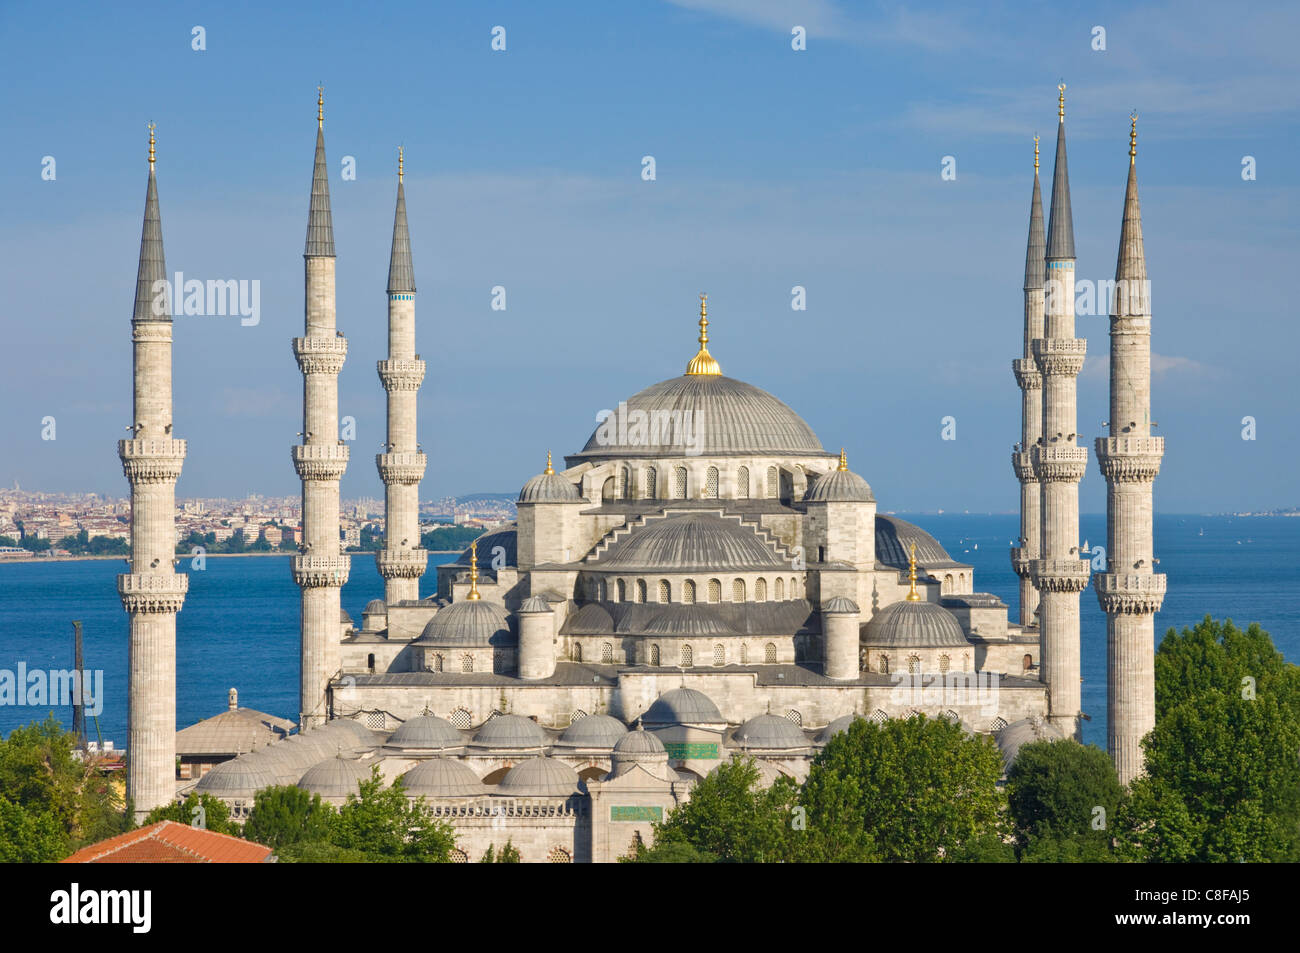 The Blue Mosque (Sultan Ahmet Camii) with domes and six minarets Stock Photo,...